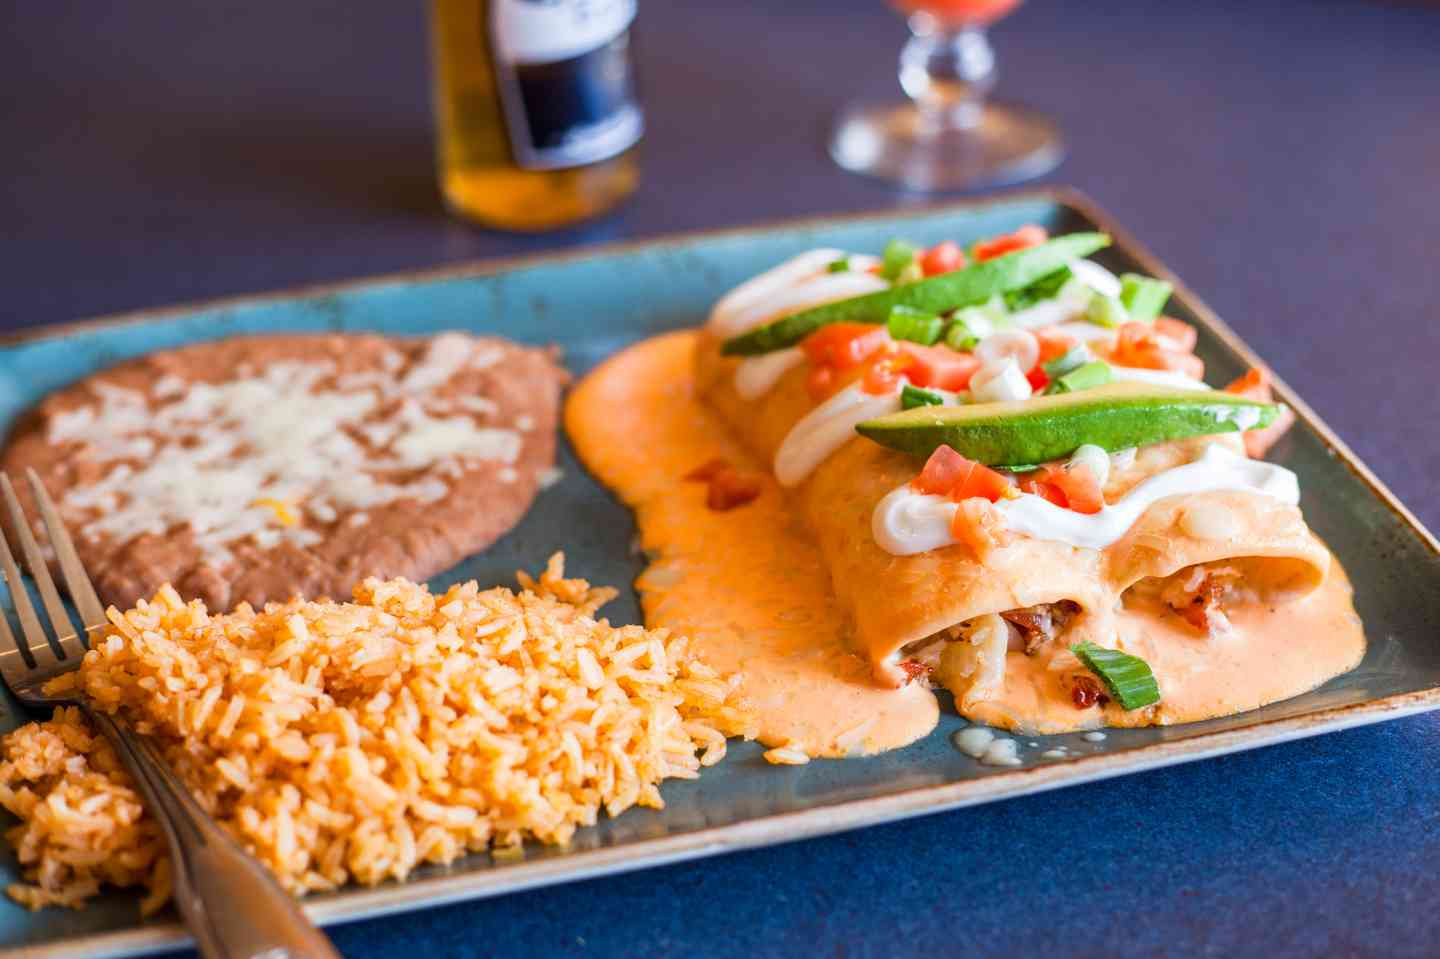 Lobster, Crab or Shrimp Enchiladas